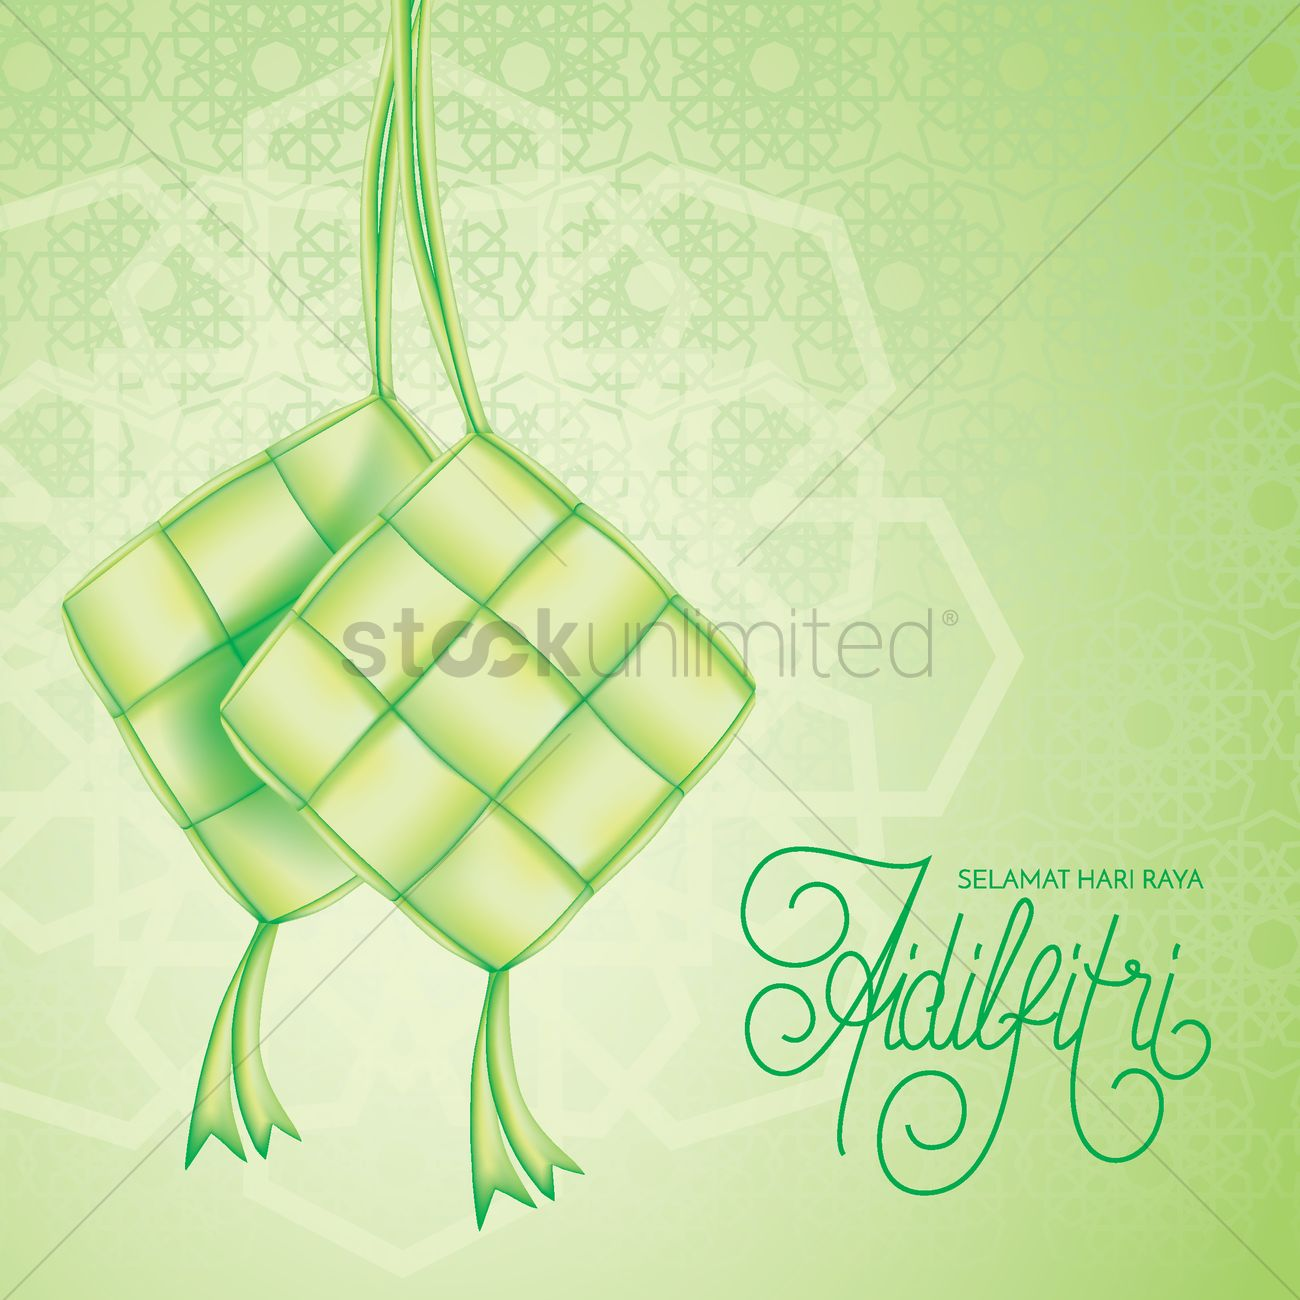 Selamat Hari Raya Greeting Vector Image 1828196 Stockunlimited